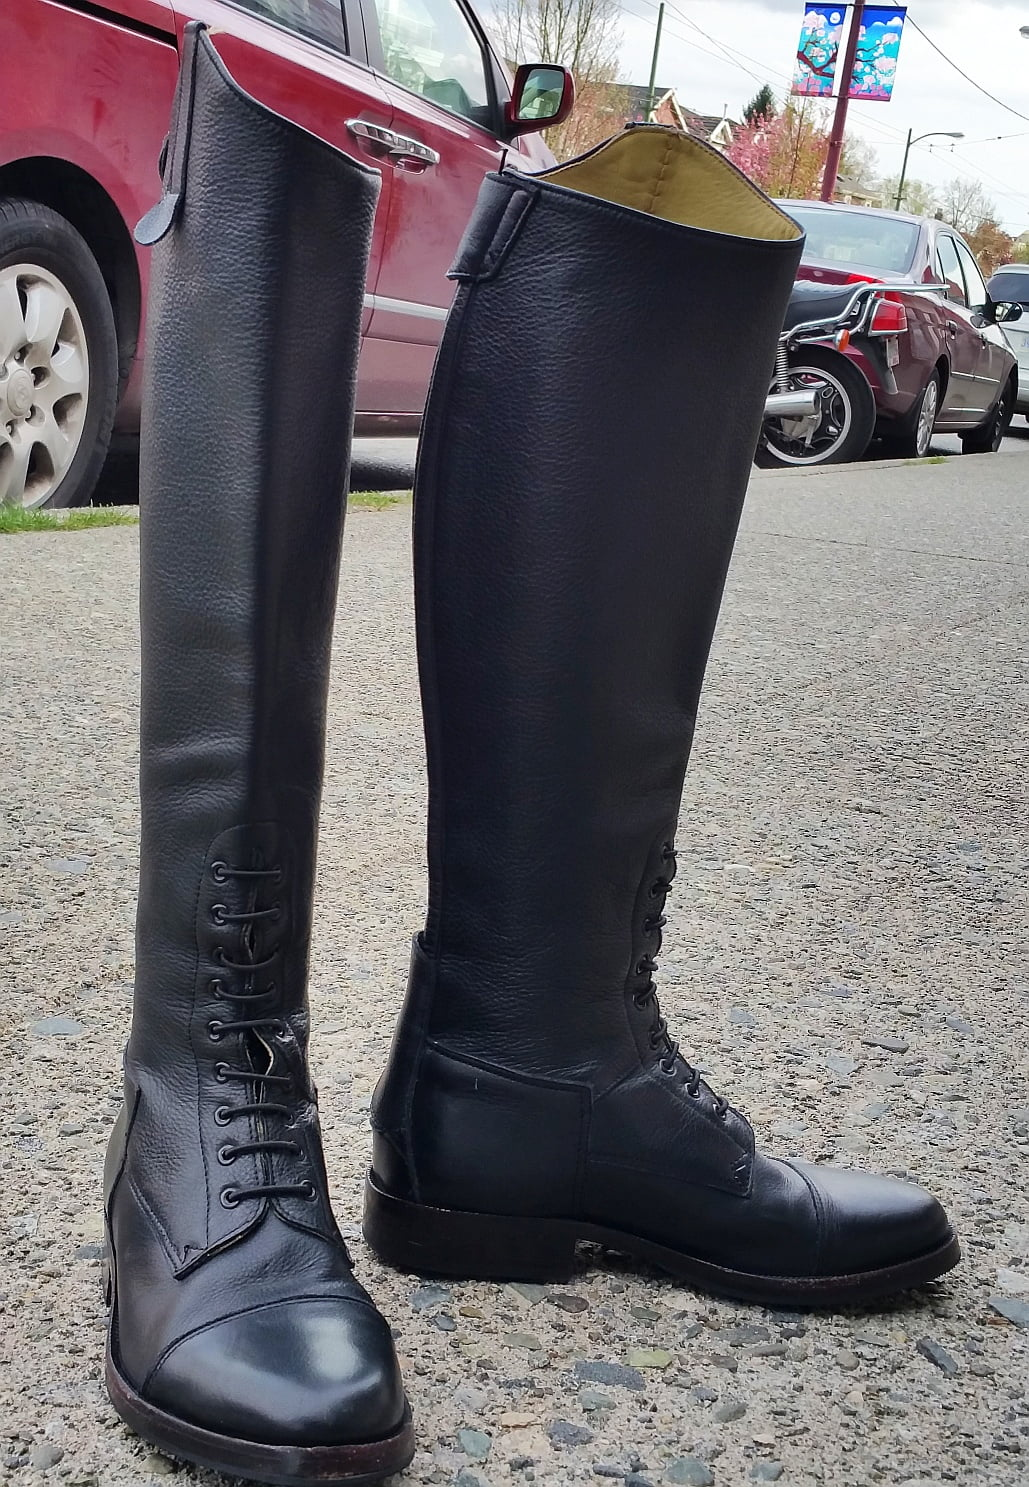 Beautiful, tiny calf boots…